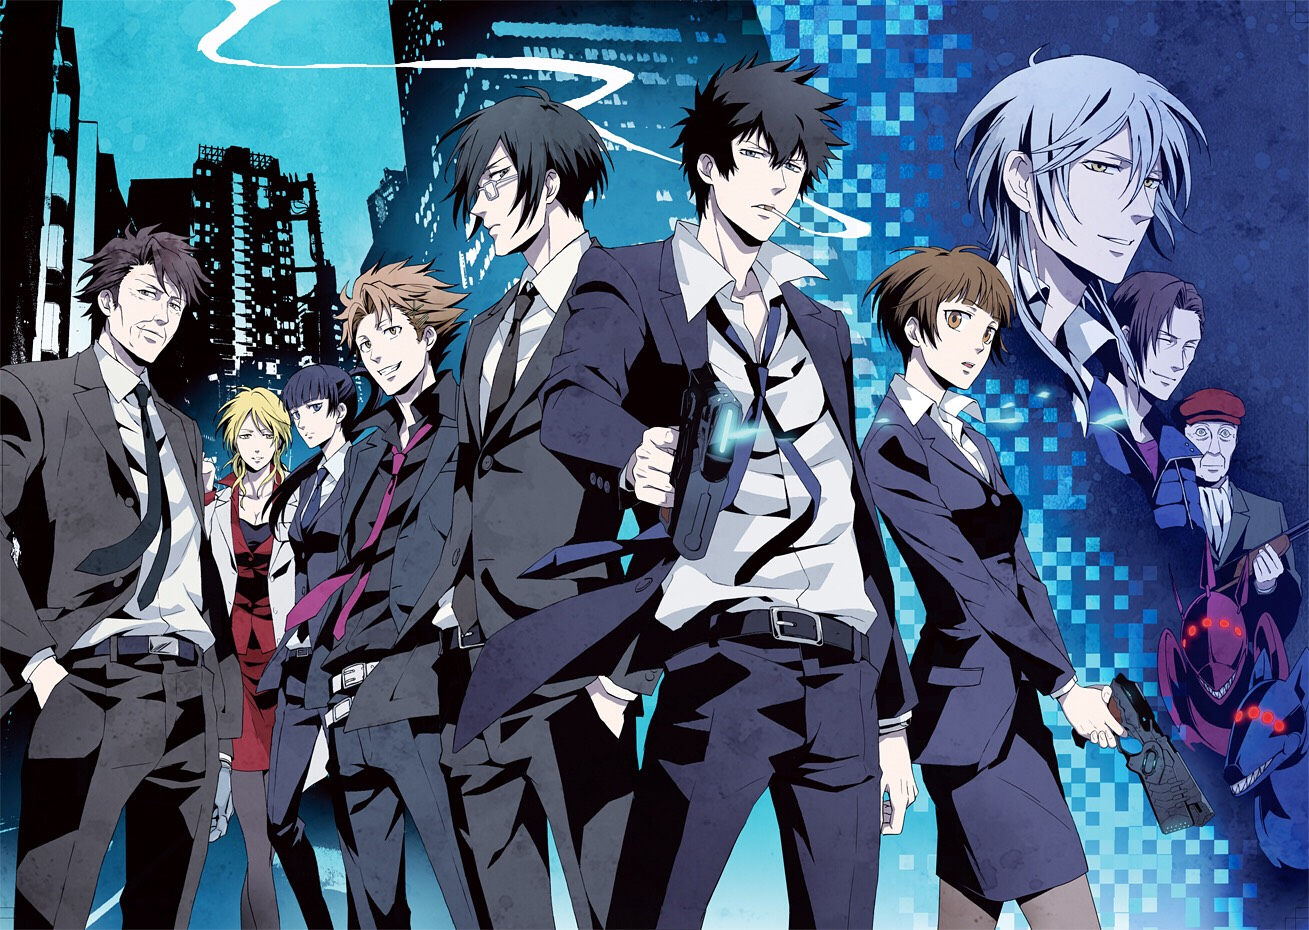 Psycho pass.   Takes place in the future and we follow Agent Akane's adventures trying to maintain social order by tracking down those who are terrorizing the city